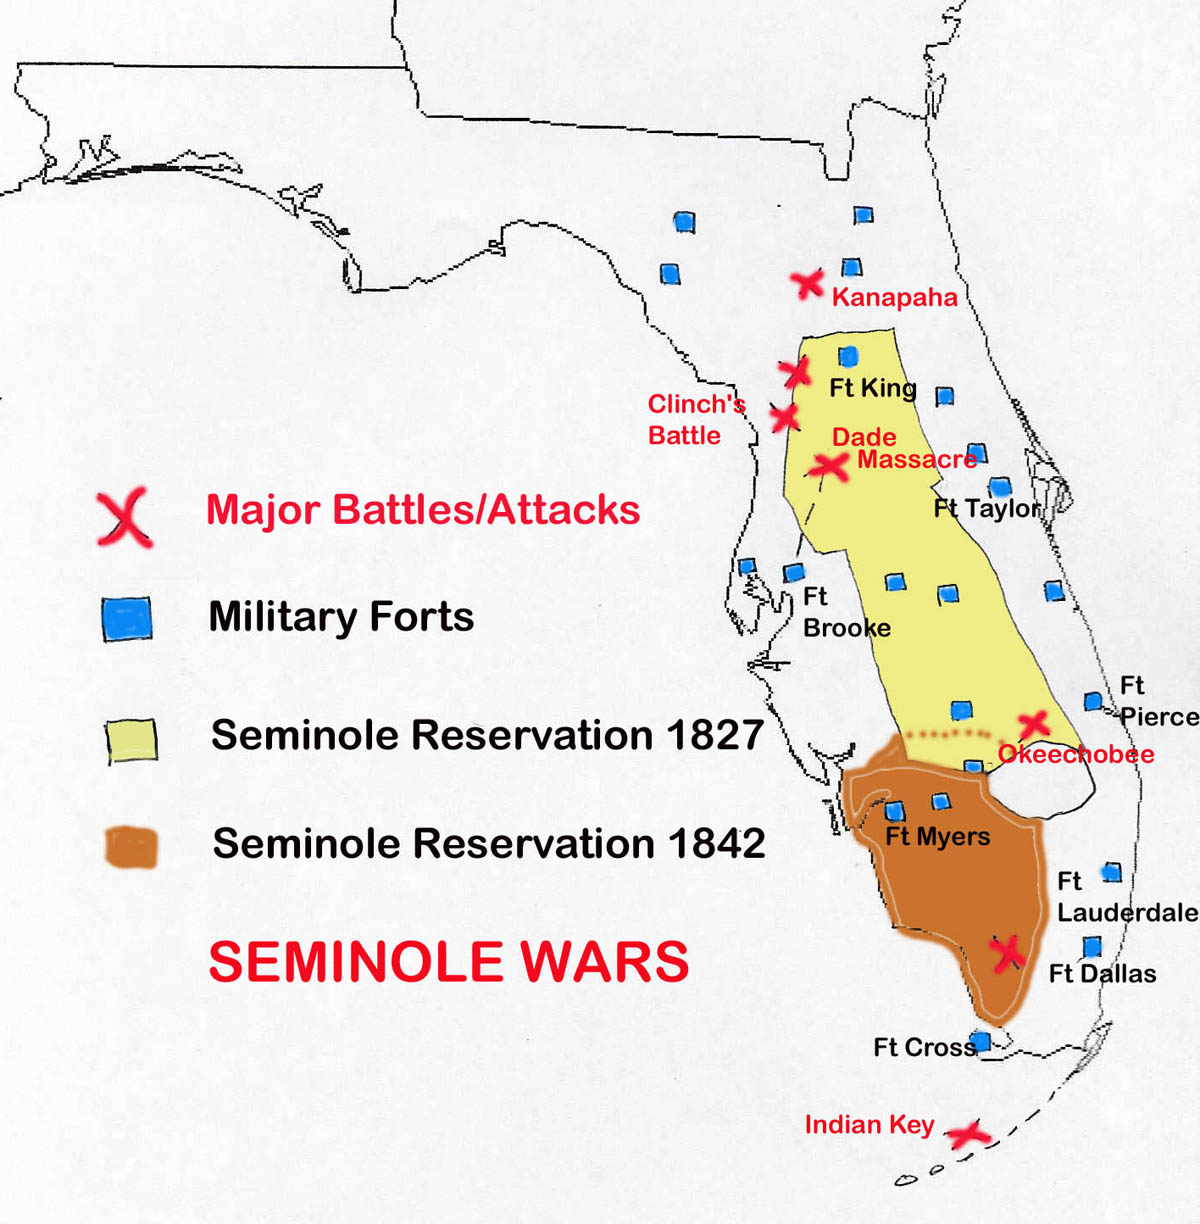 Map of Seminole Wars in Florida